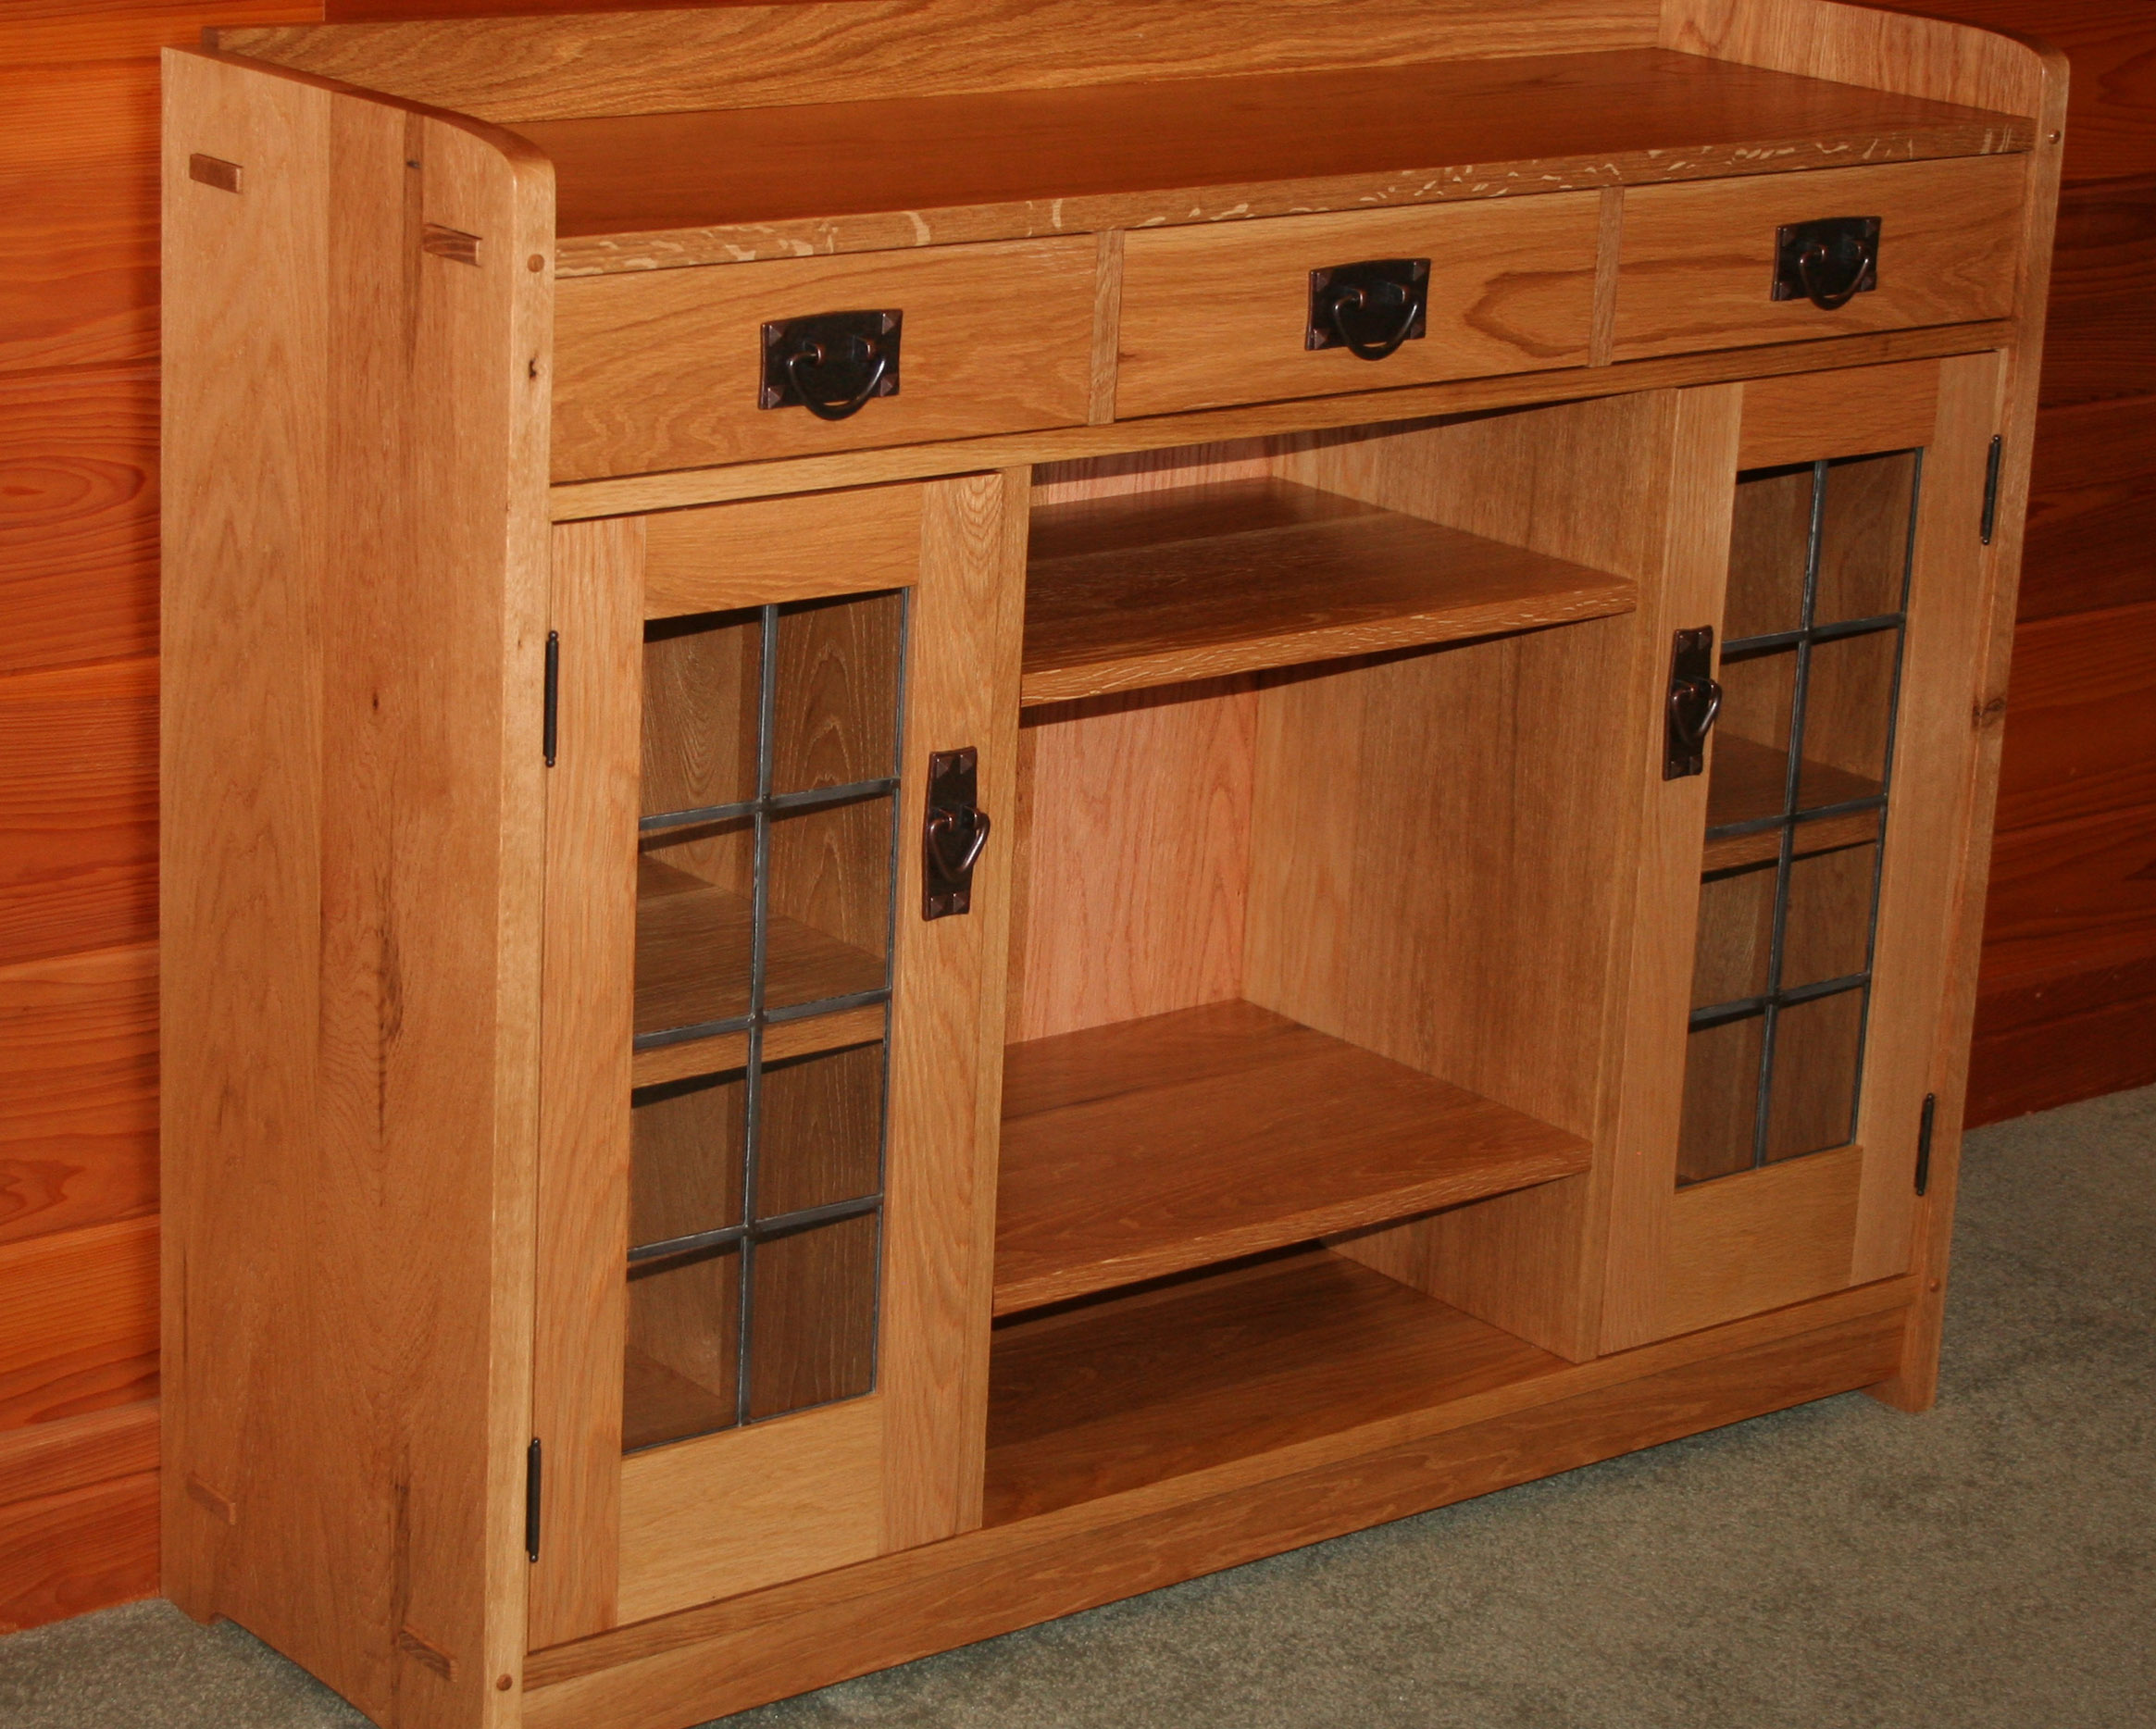 Incroyable Stickley Cabinet